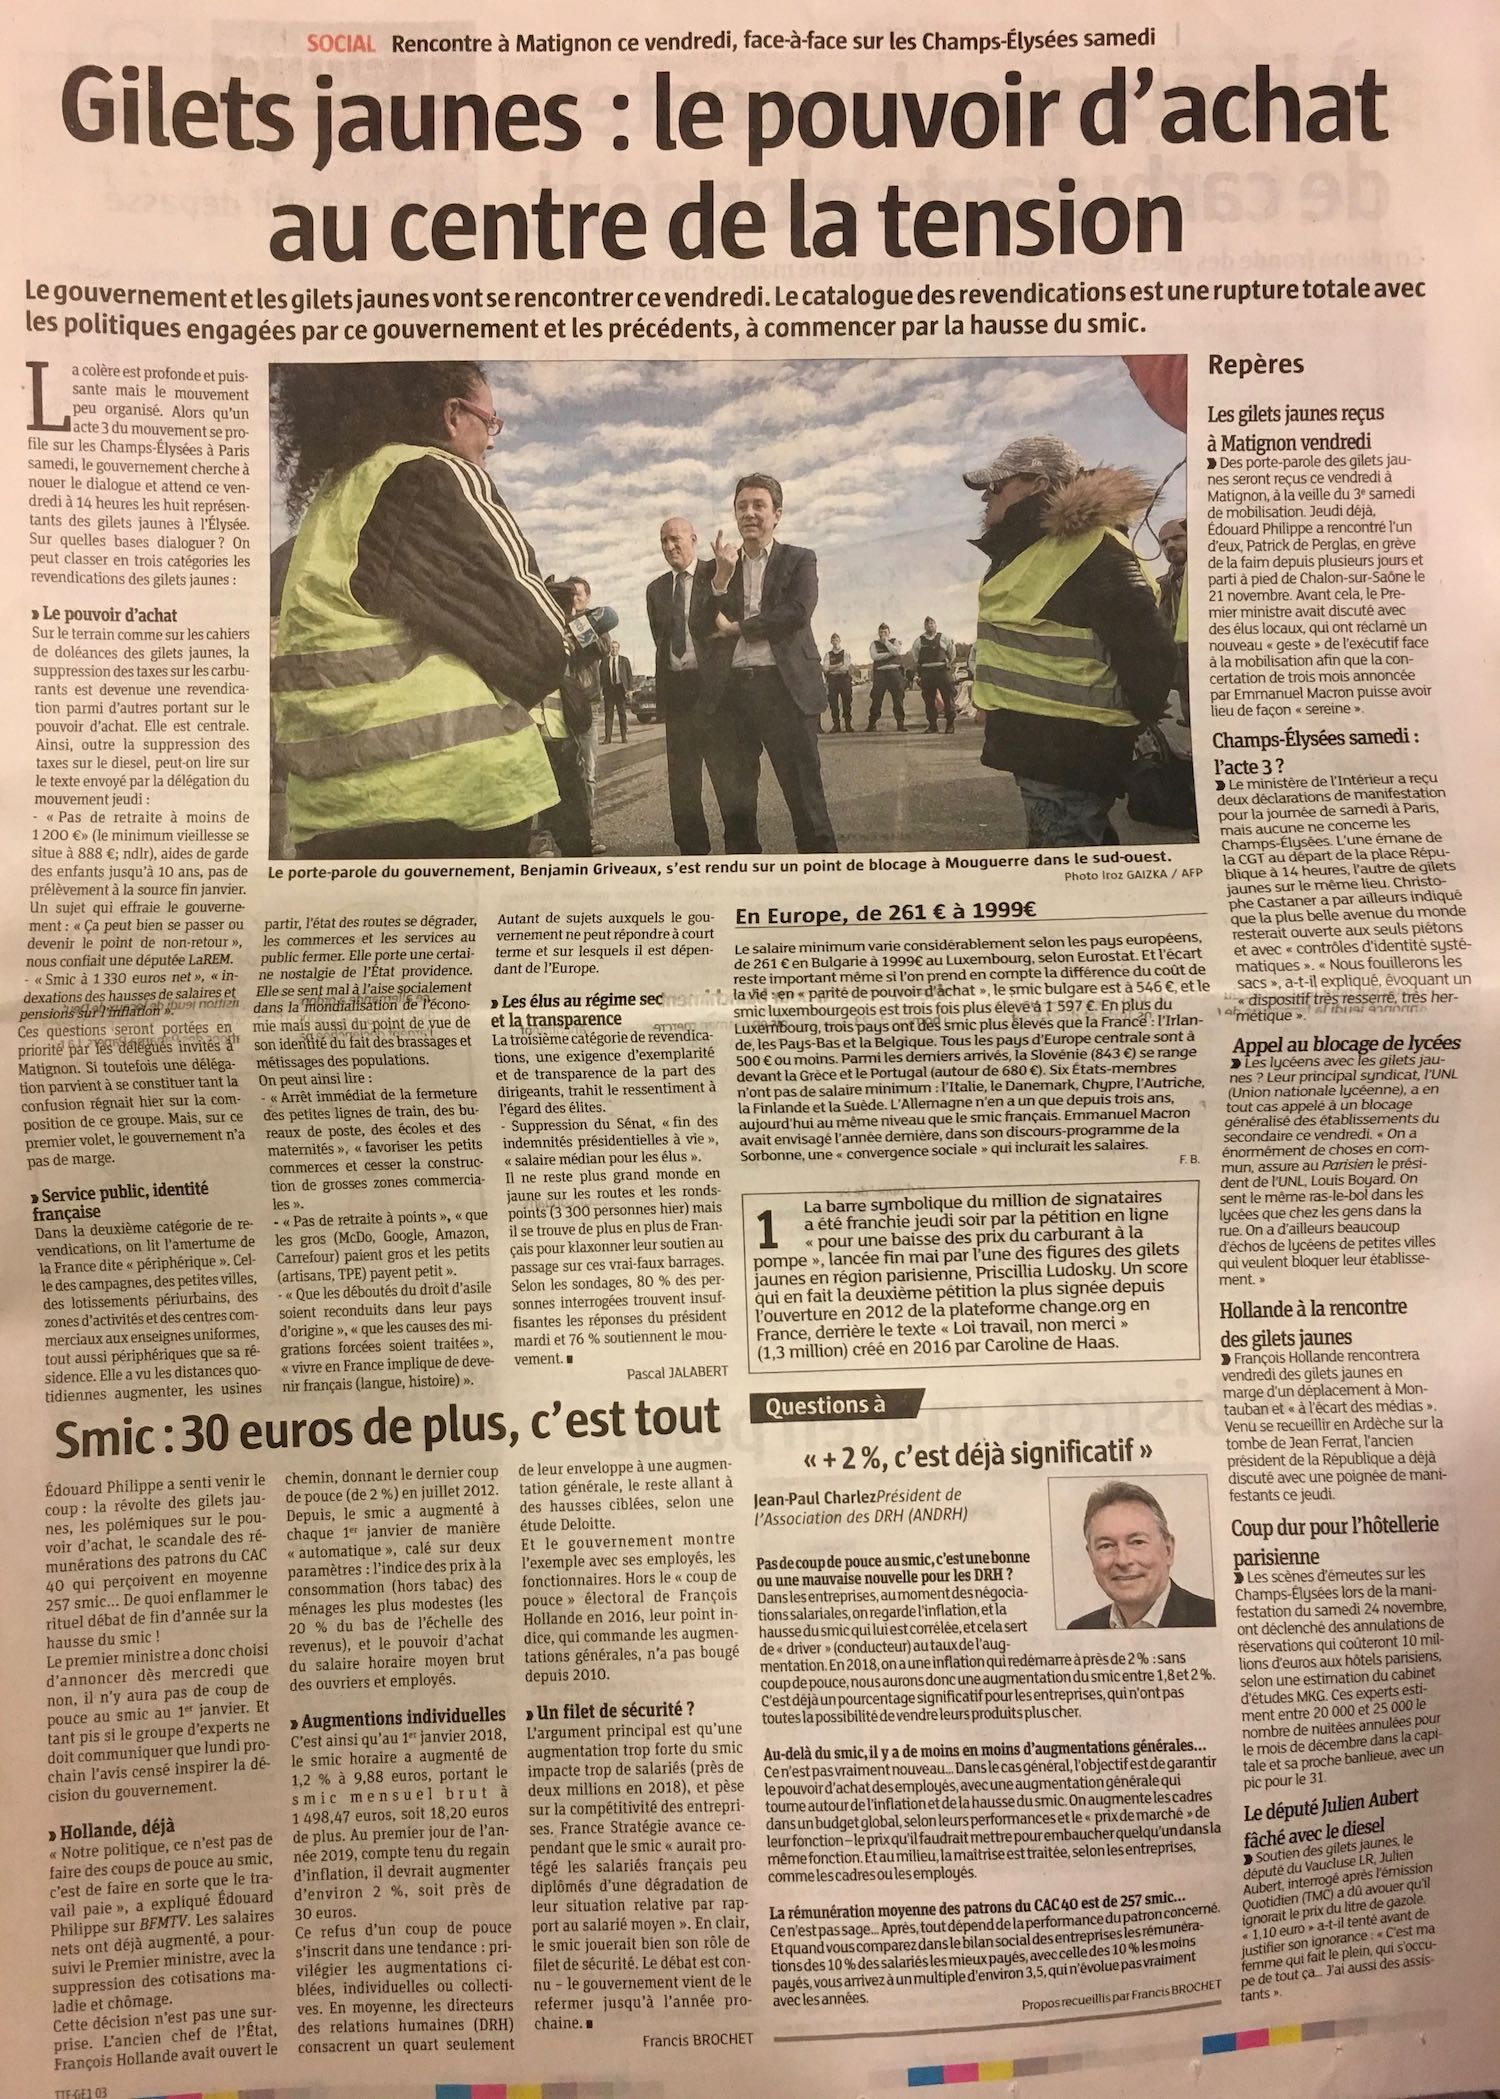 """Les Gilets jaunes: purchasing power at the centre of the tensions"""